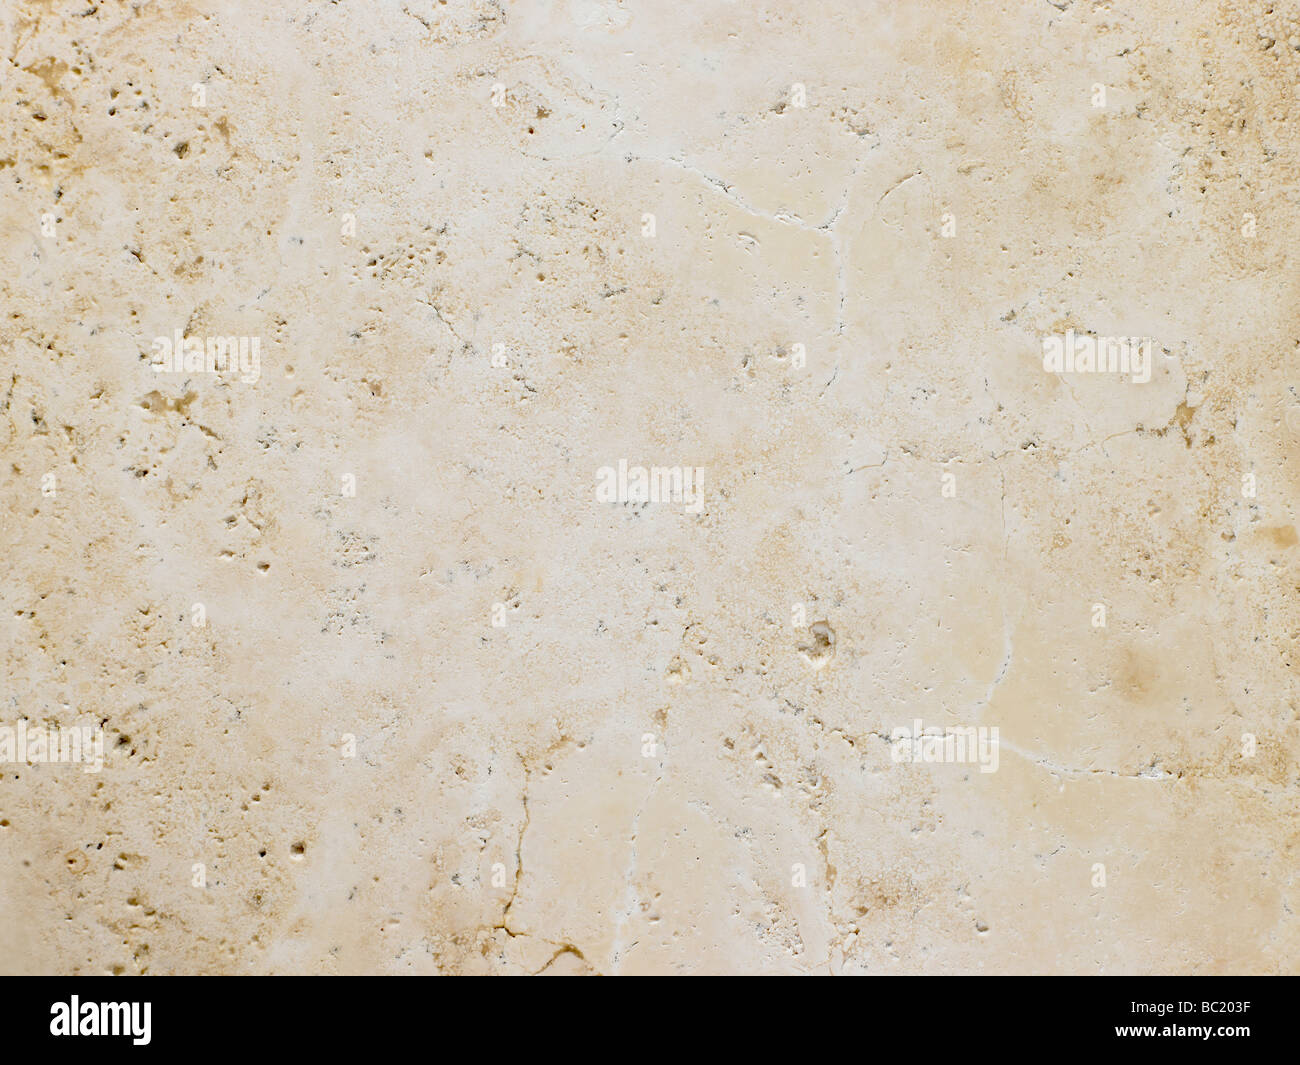 Marble Texture Background - Stock Image